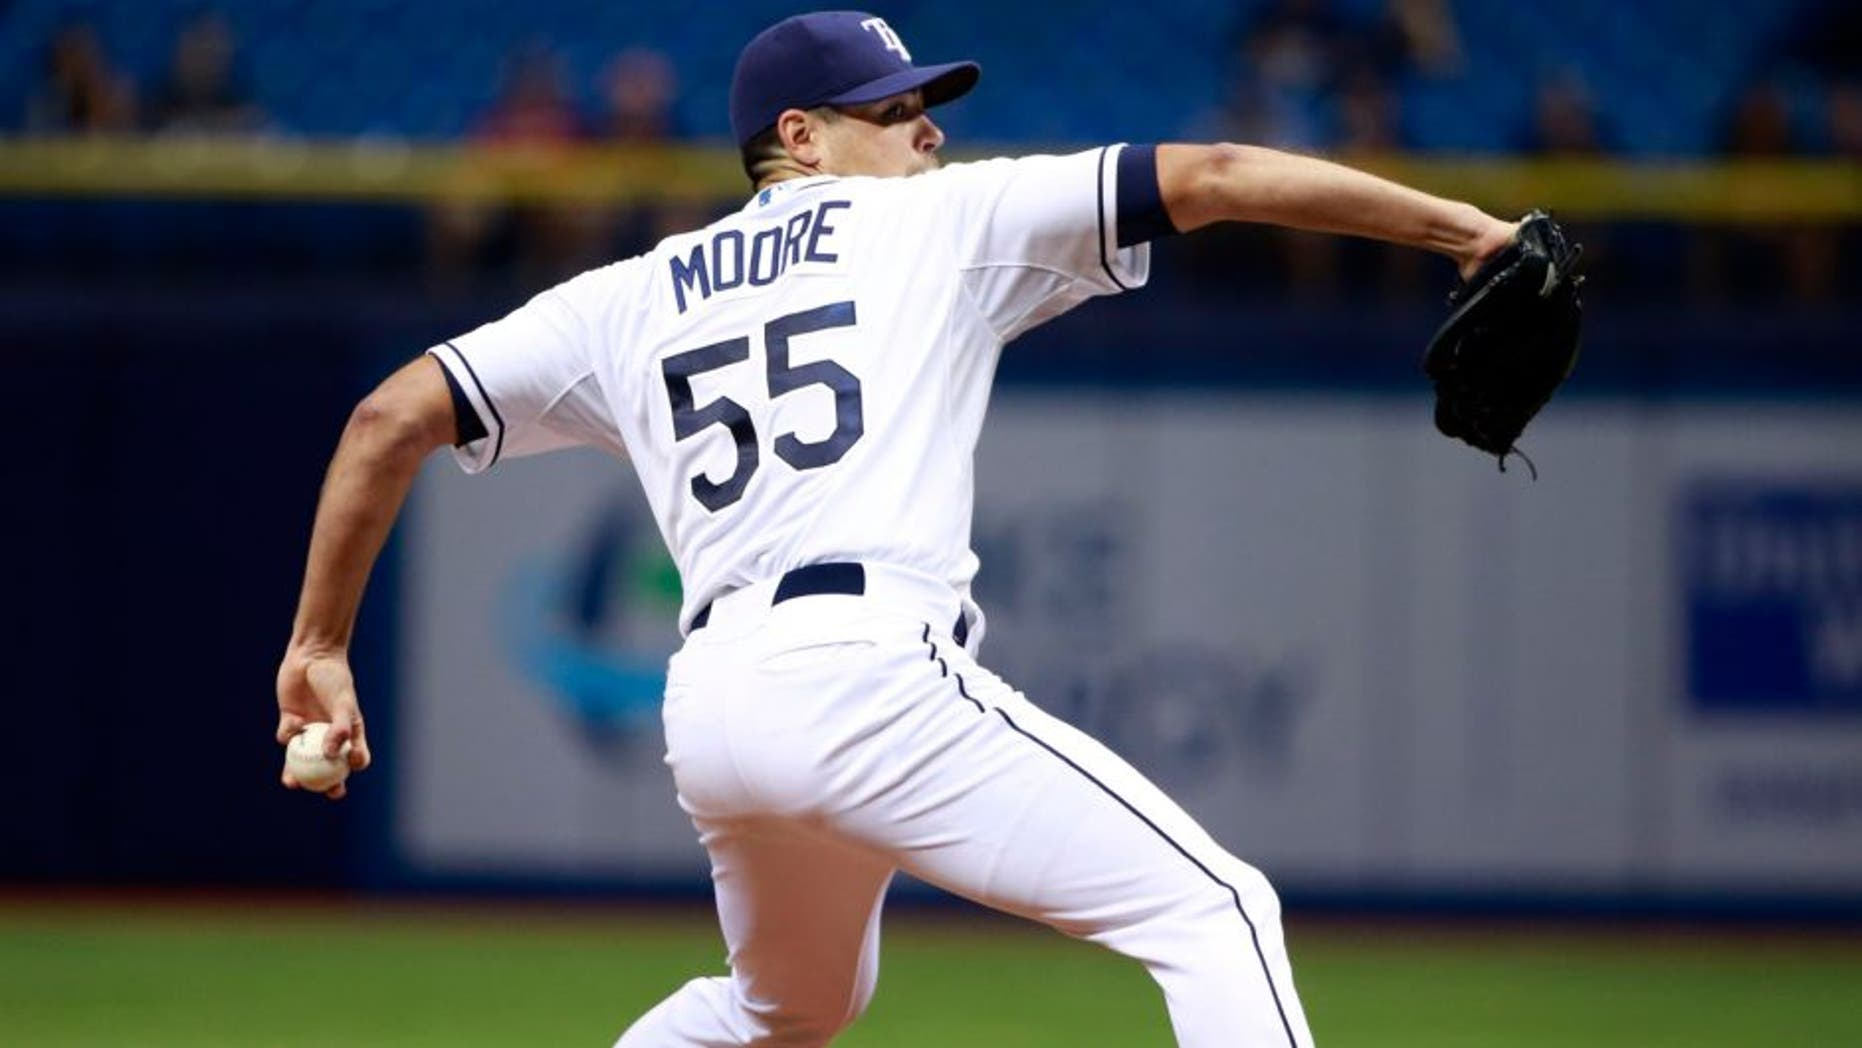 Sep 17, 2015; St. Petersburg, FL, USA; Tampa Bay Rays starting pitcher Matt Moore (55) throws a pitch against the Baltimore Orioles during the second inning at Tropicana Field. Mandatory Credit: Kim Klement-USA TODAY Sports